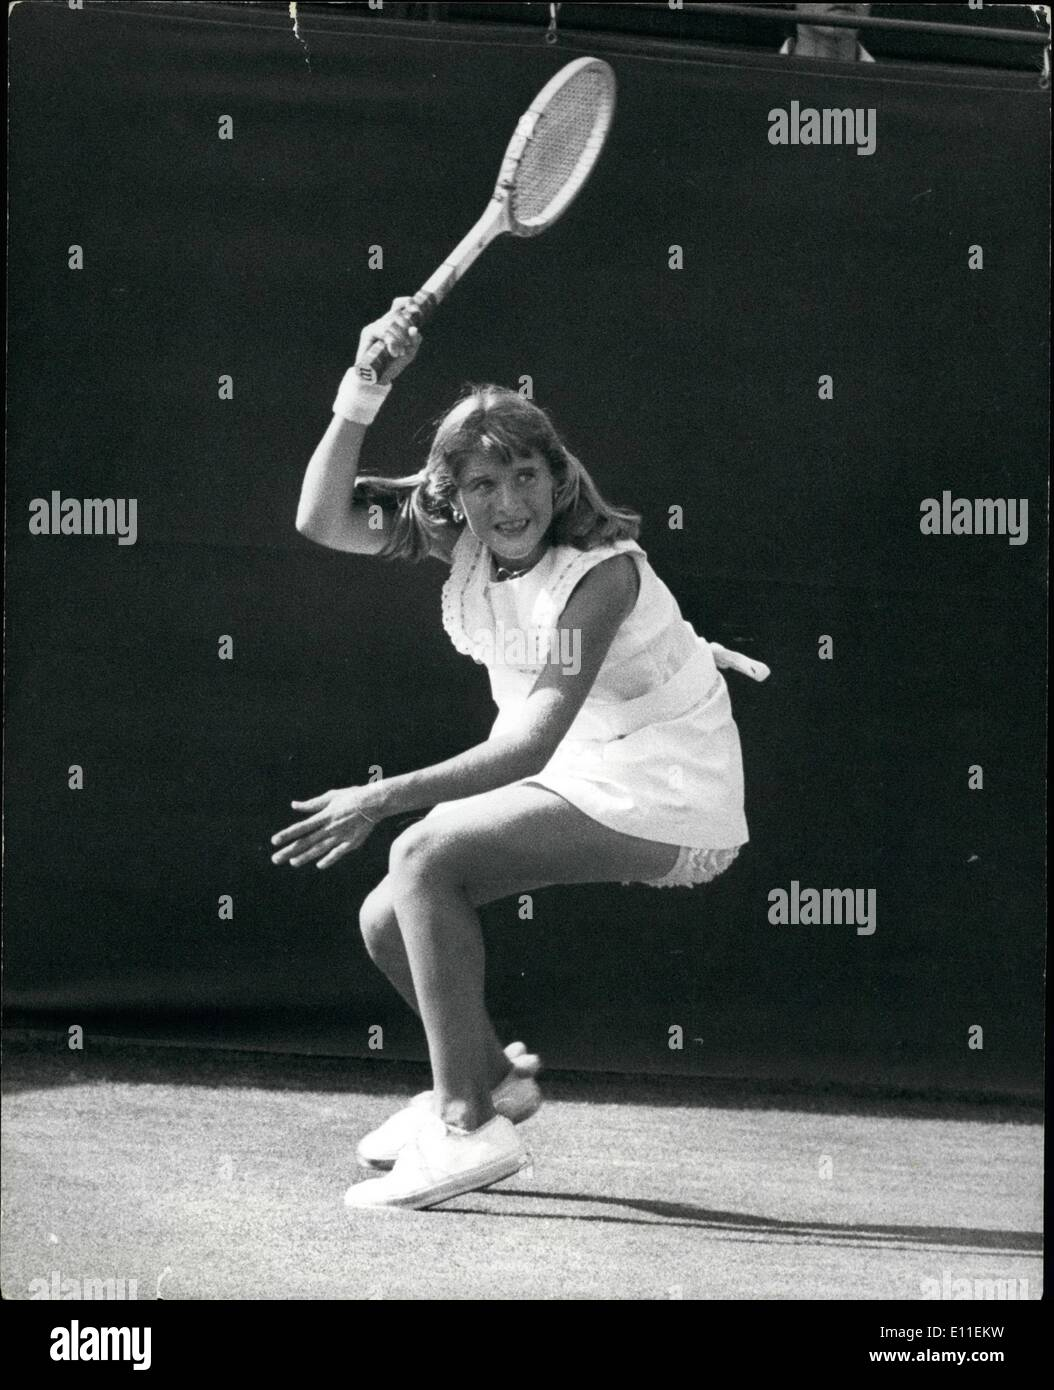 Jun 06 1977 Tracy Austin the 14 year old American Tennis Star